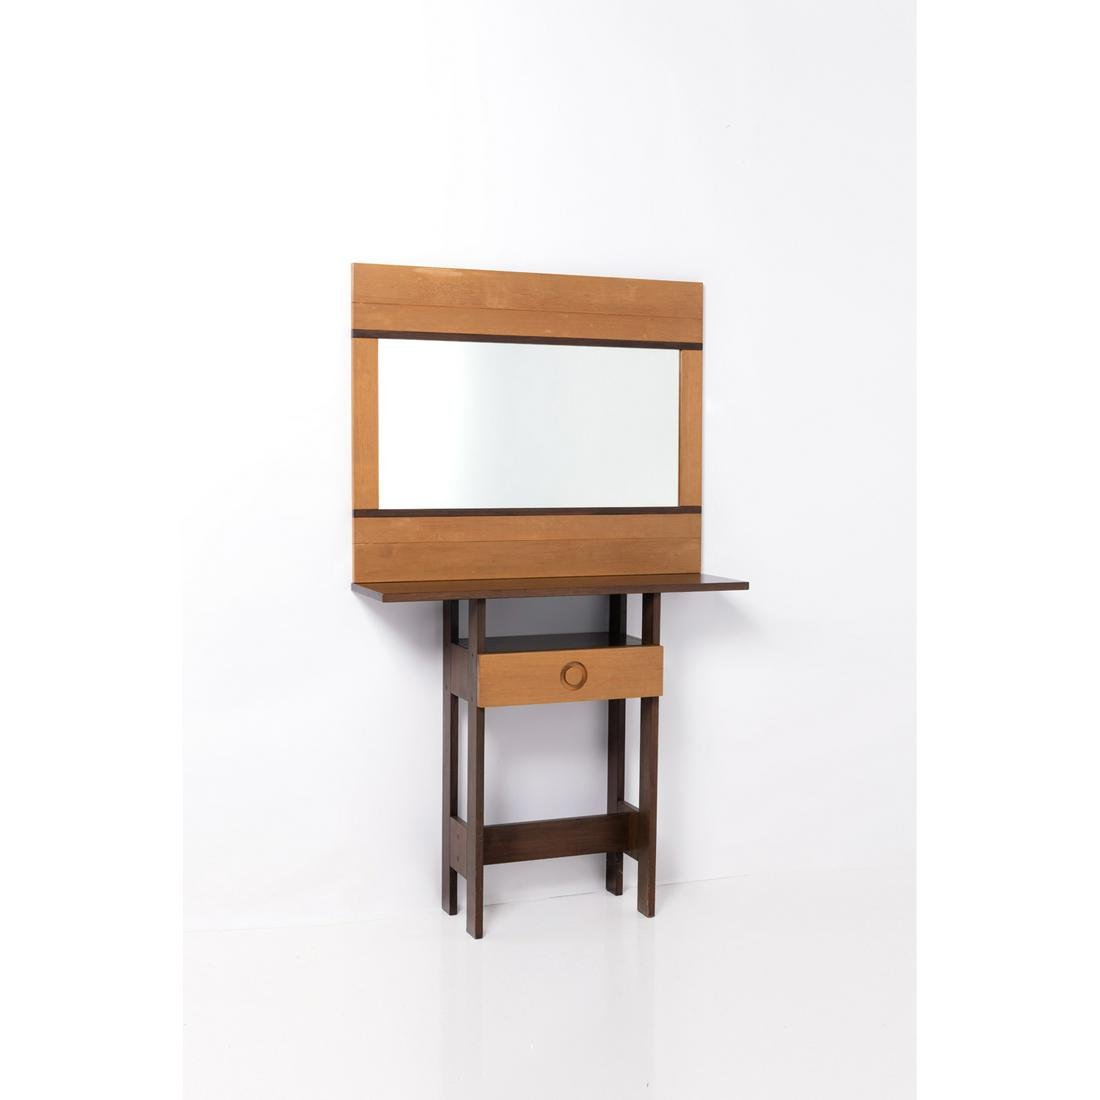 Ettore Sottsass (1917-2007) Totem Console and mirror